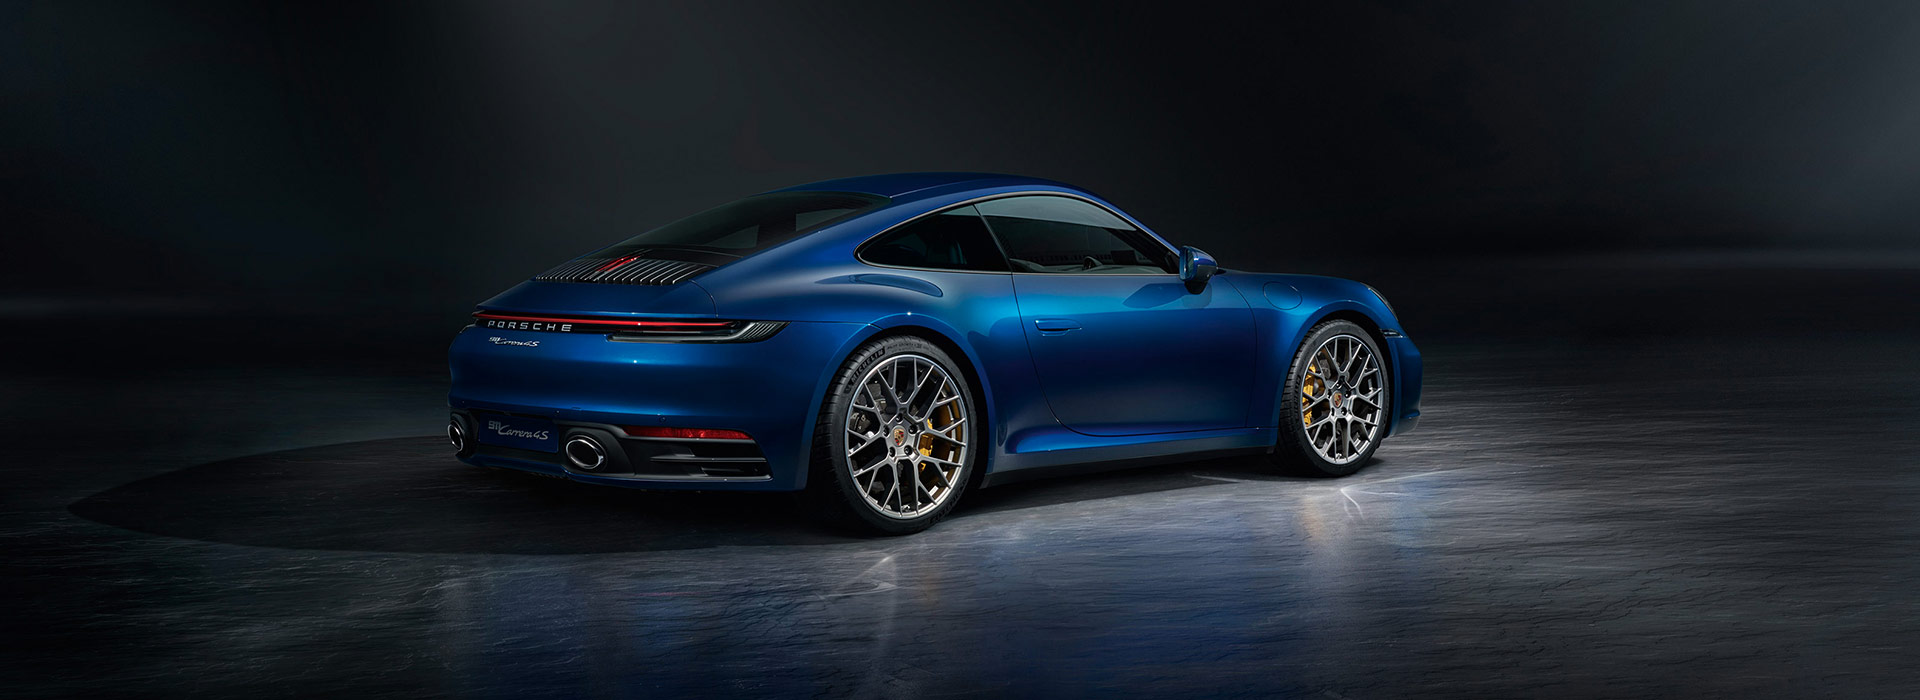 Timeless Machine - The new 911 - 2020